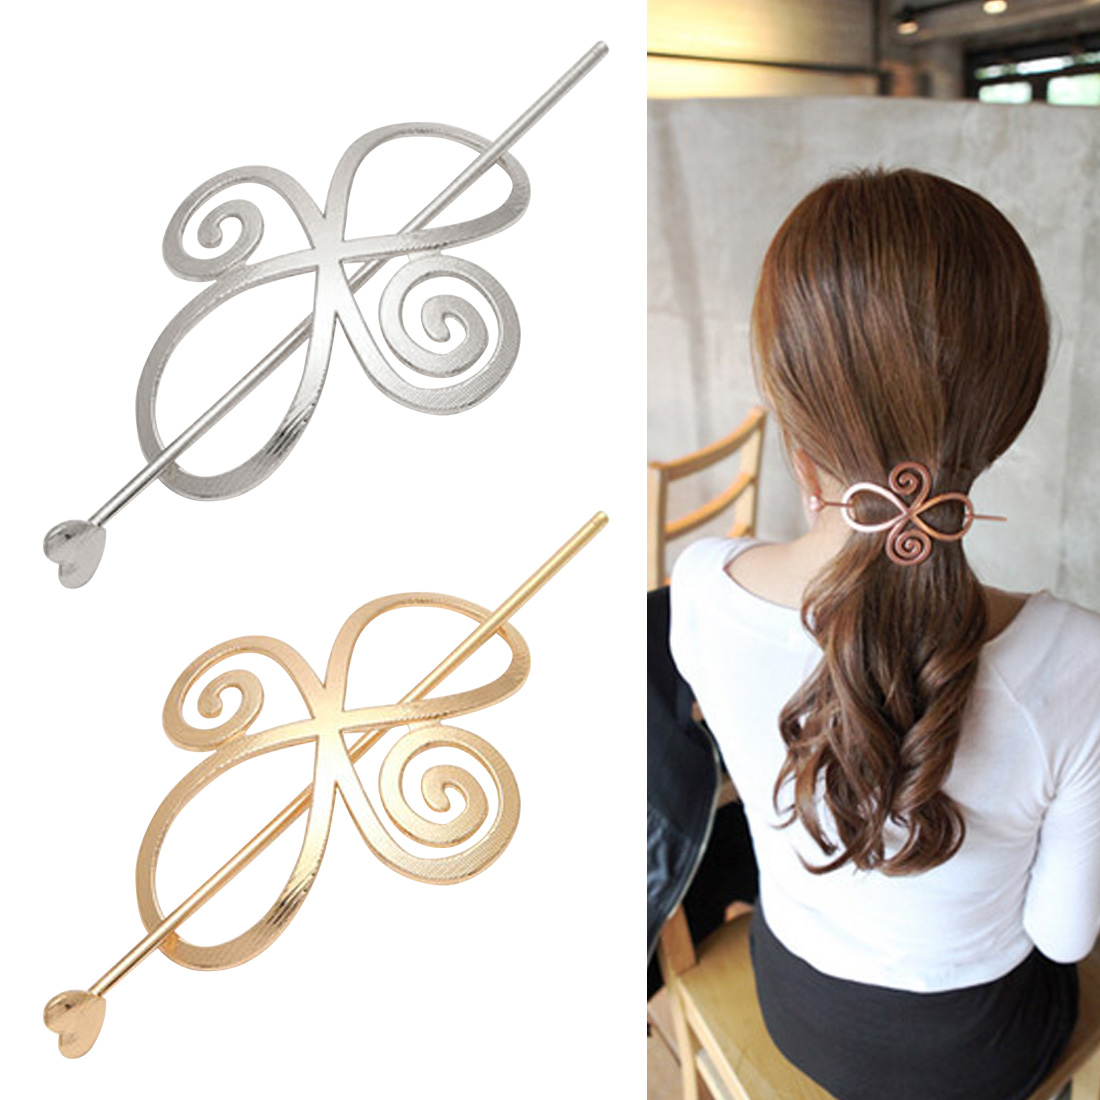 Hot 1PC 2019 Chinese hollow Stick Metal Tools Hairpin for Women Simple Elegant Ponytail Holder Gilrs Hair clip in Women 39 s Hair Accessories from Apparel Accessories